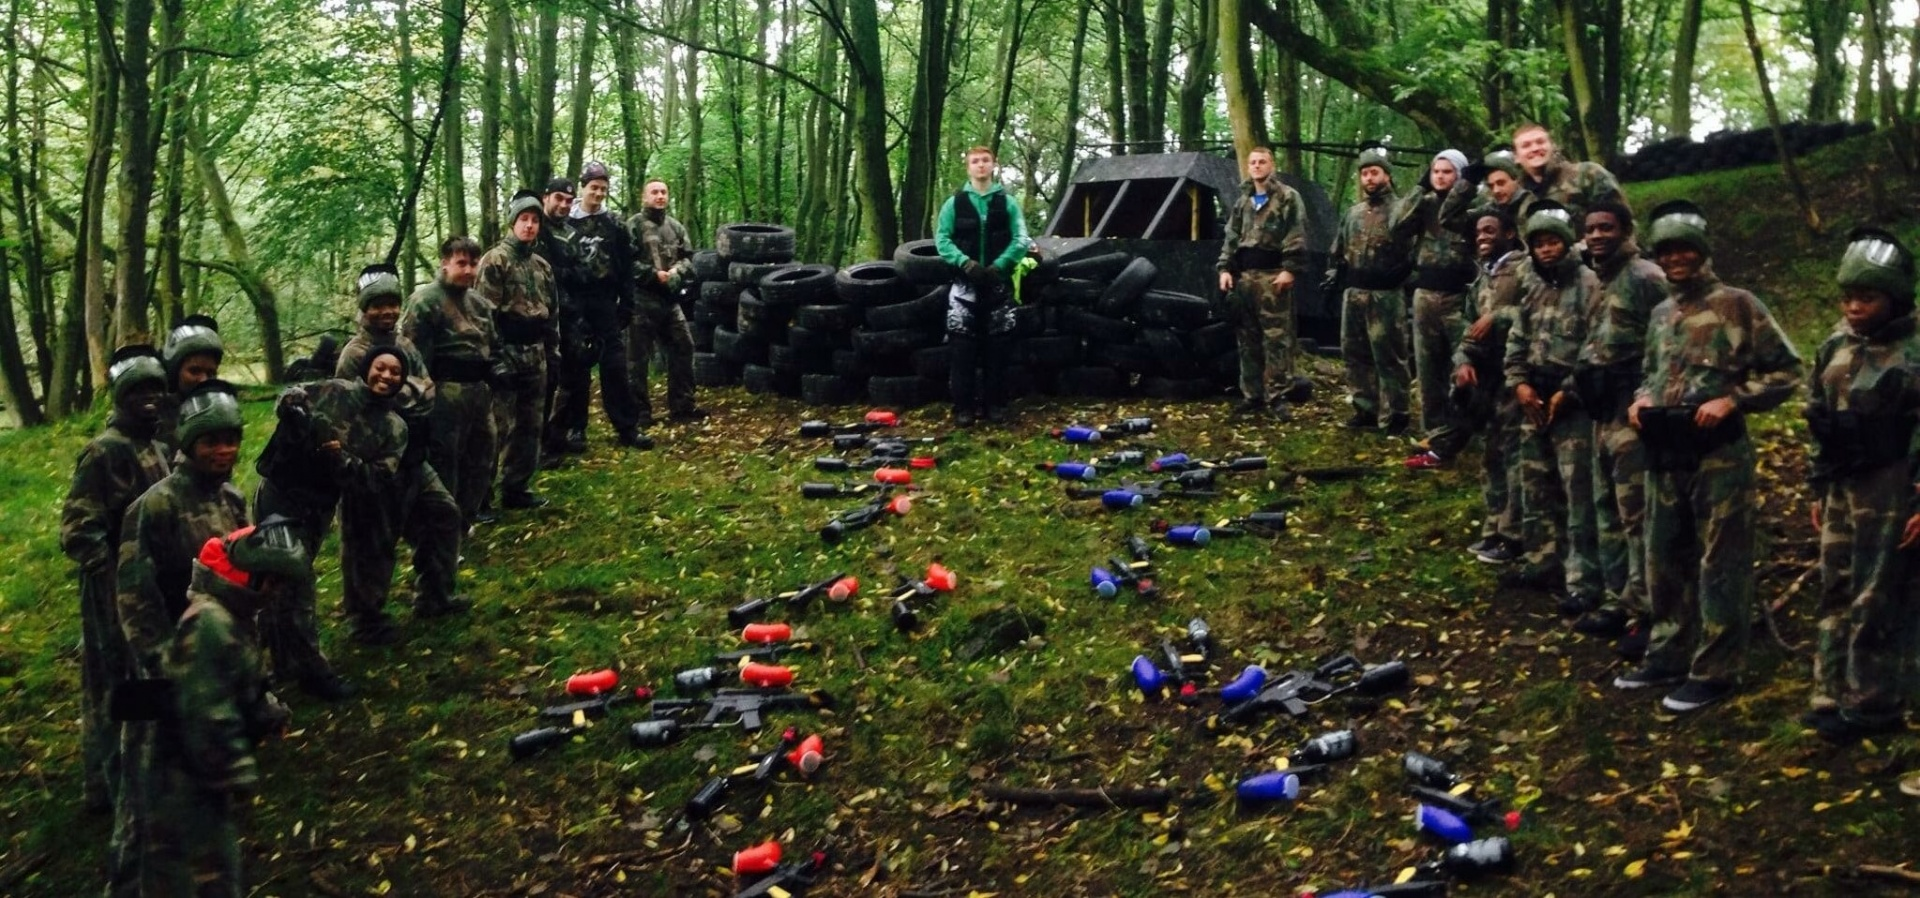 Full Day Paintballing Experience - Leeds-3